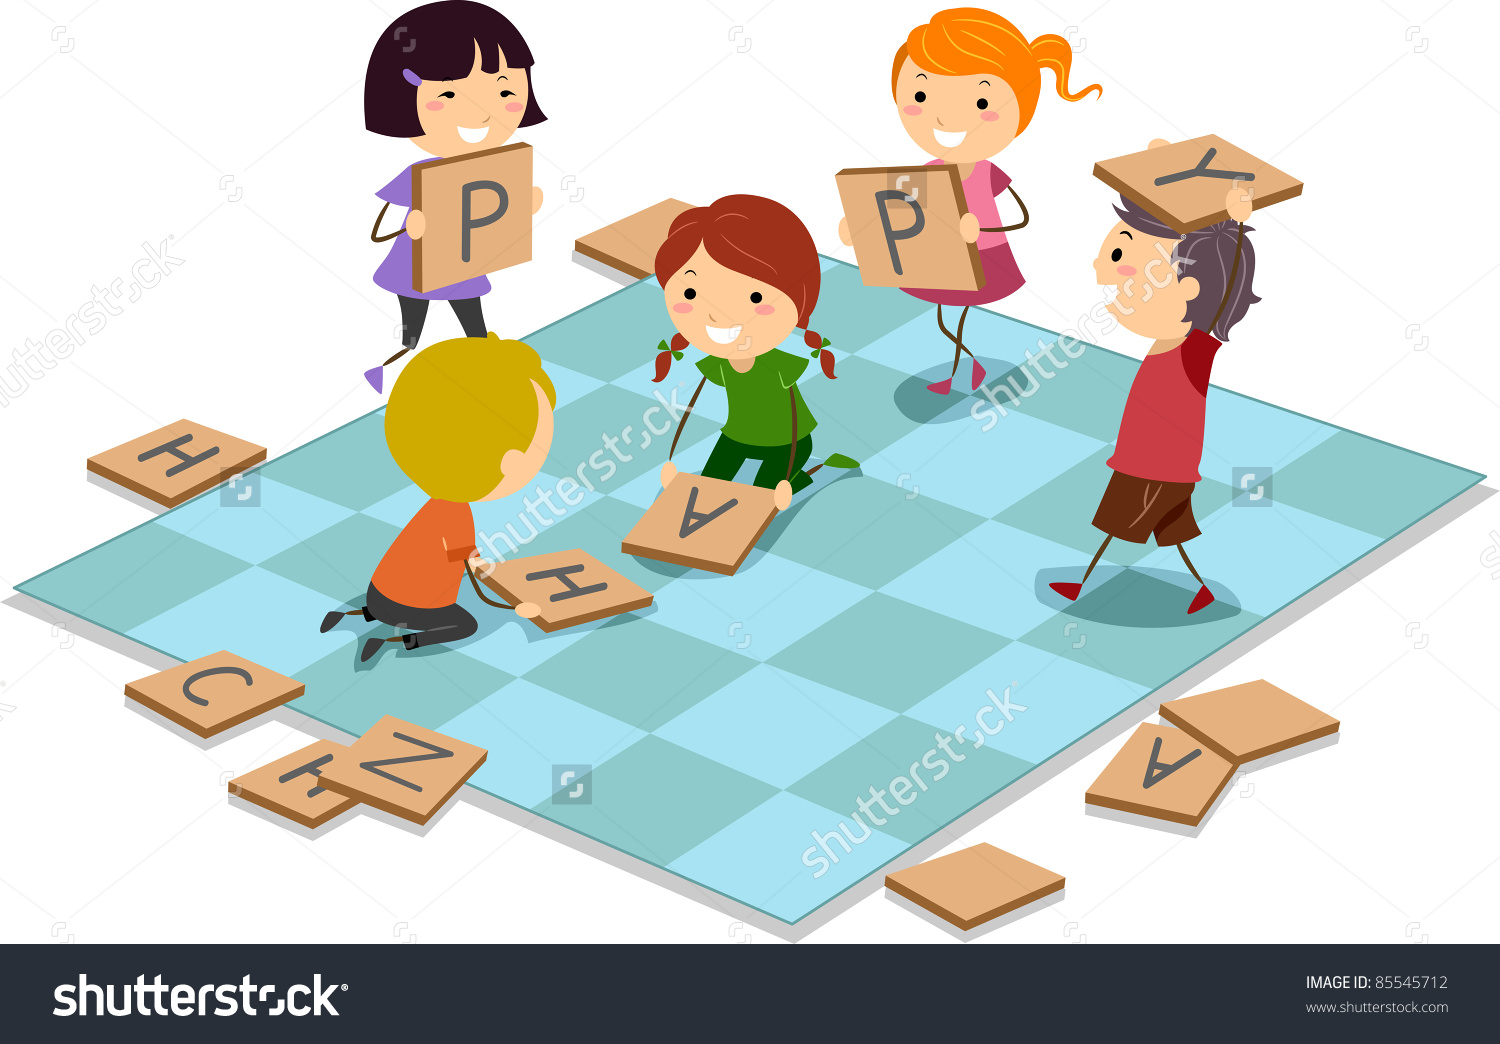 Game clipart management game. Free download